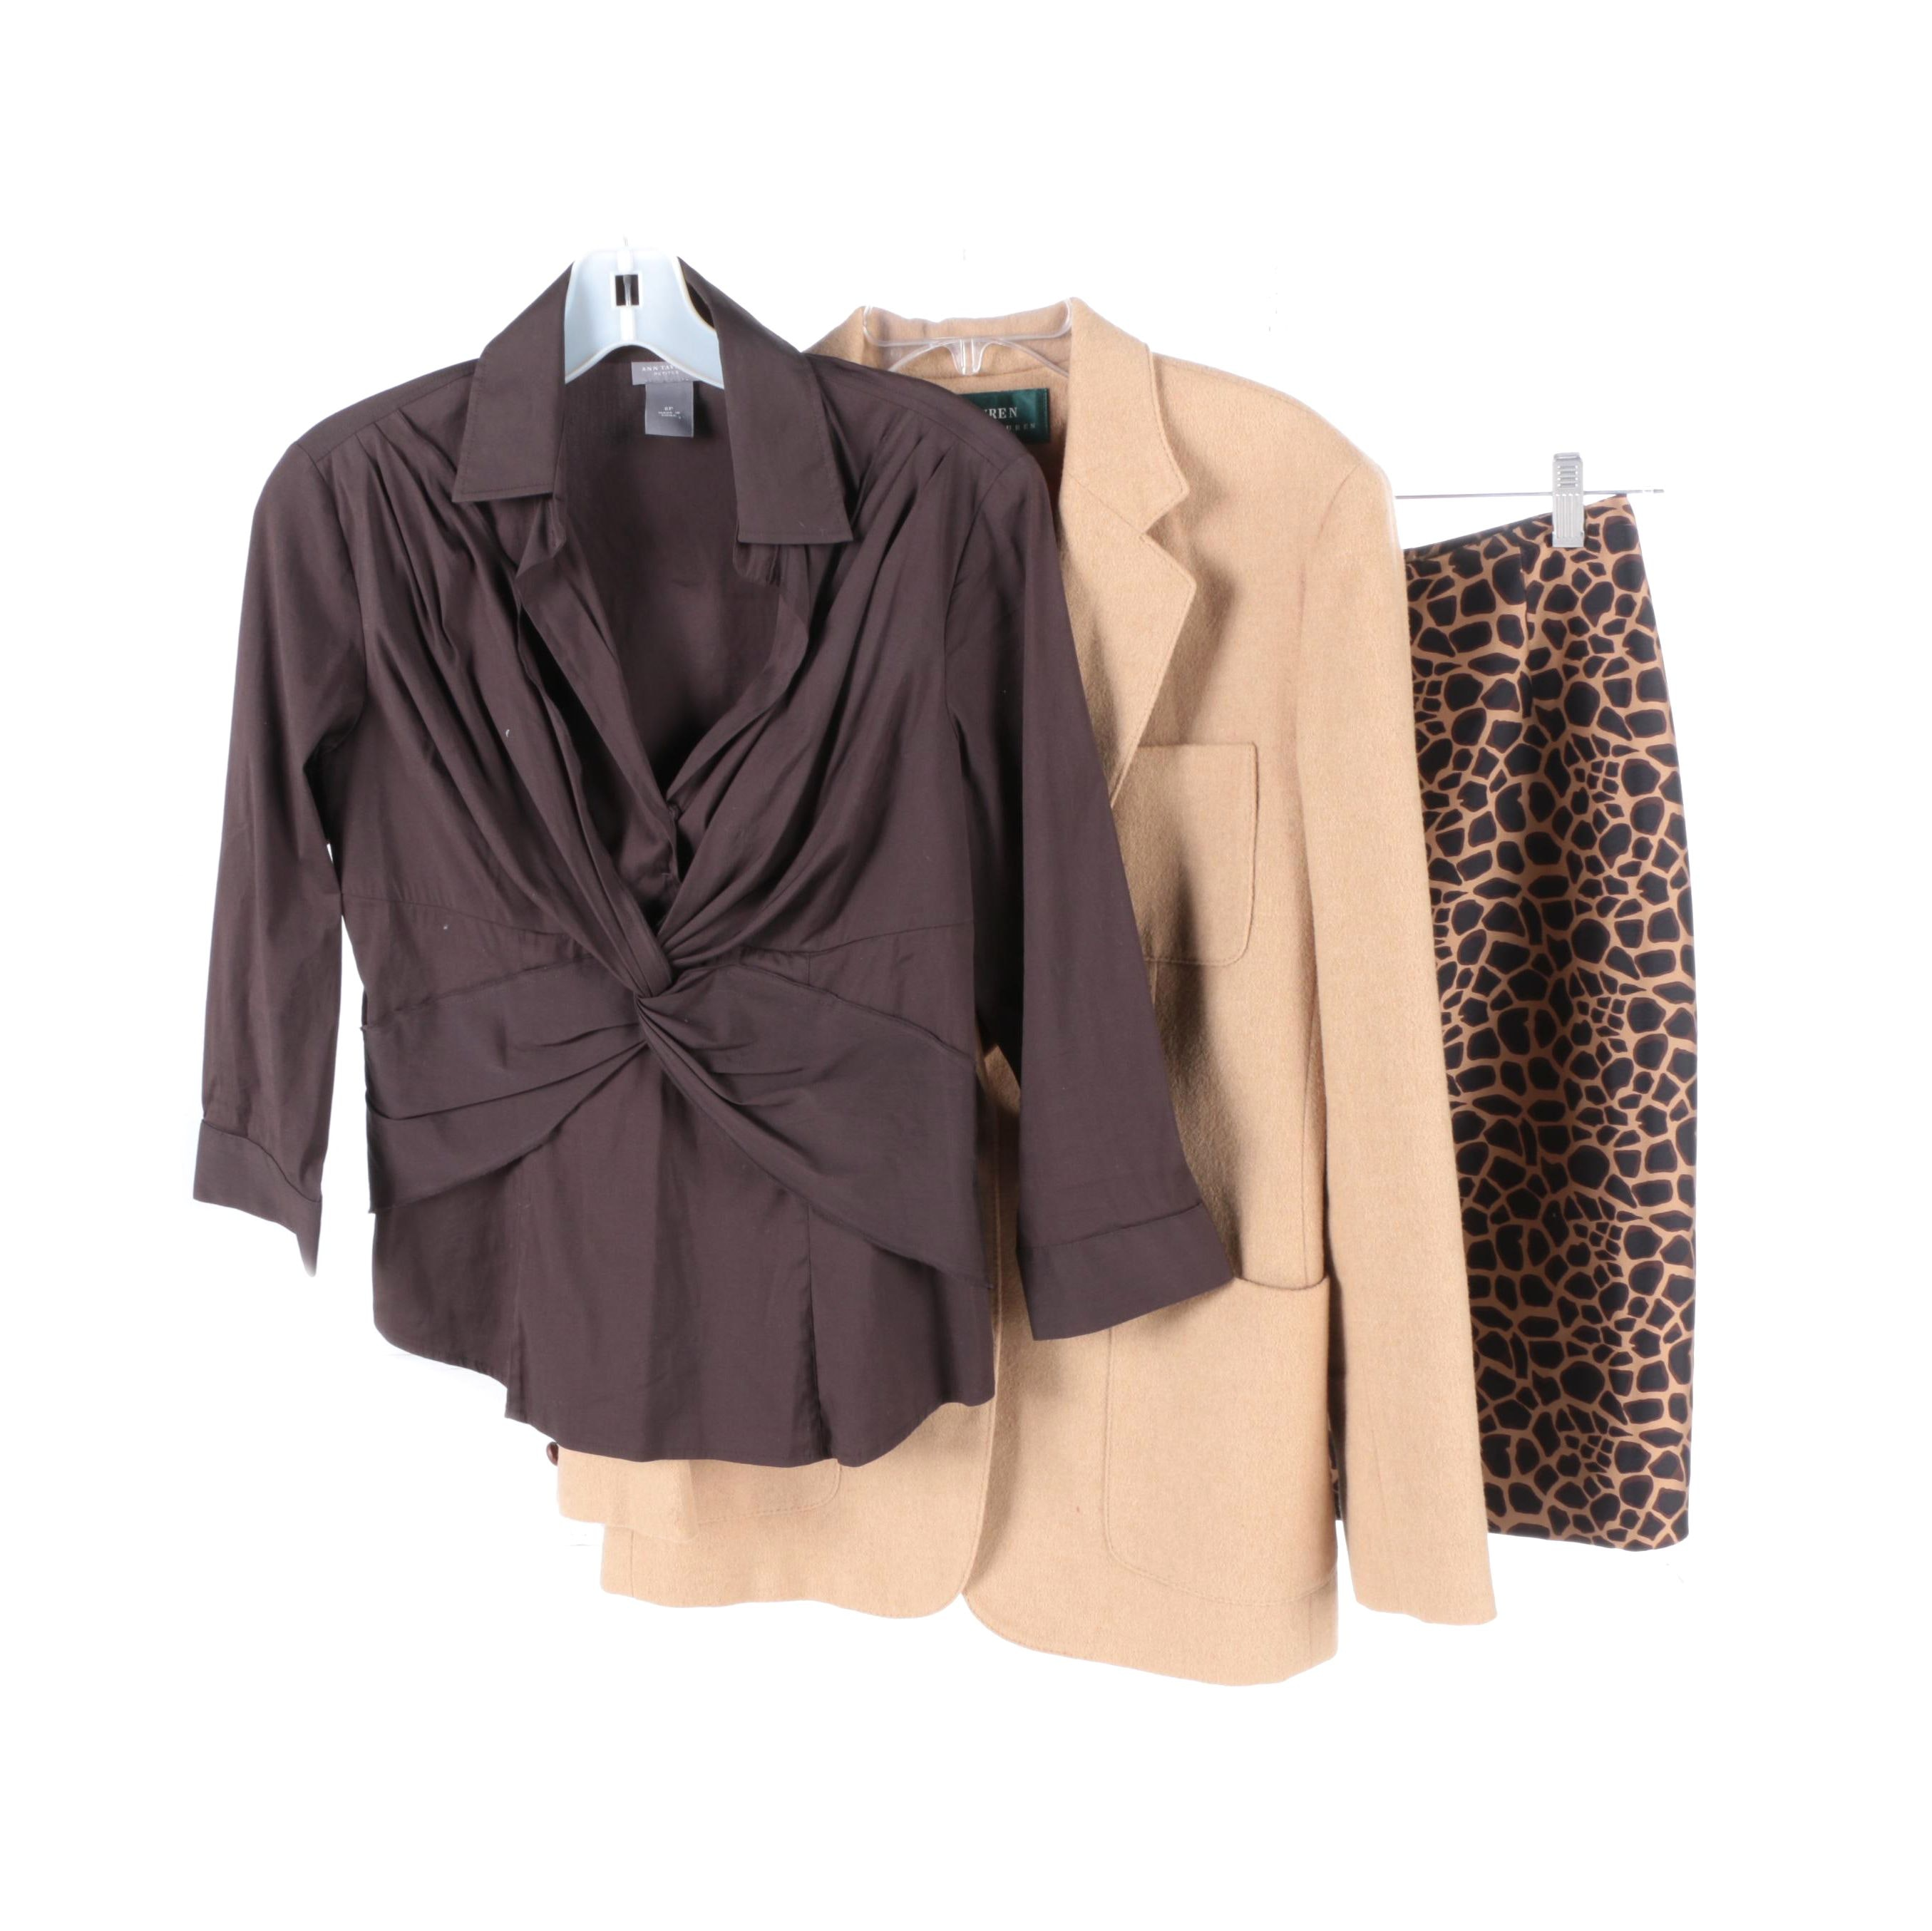 Women's Suit Separates Including Ann Taylor and Lauren Ralph Lauren